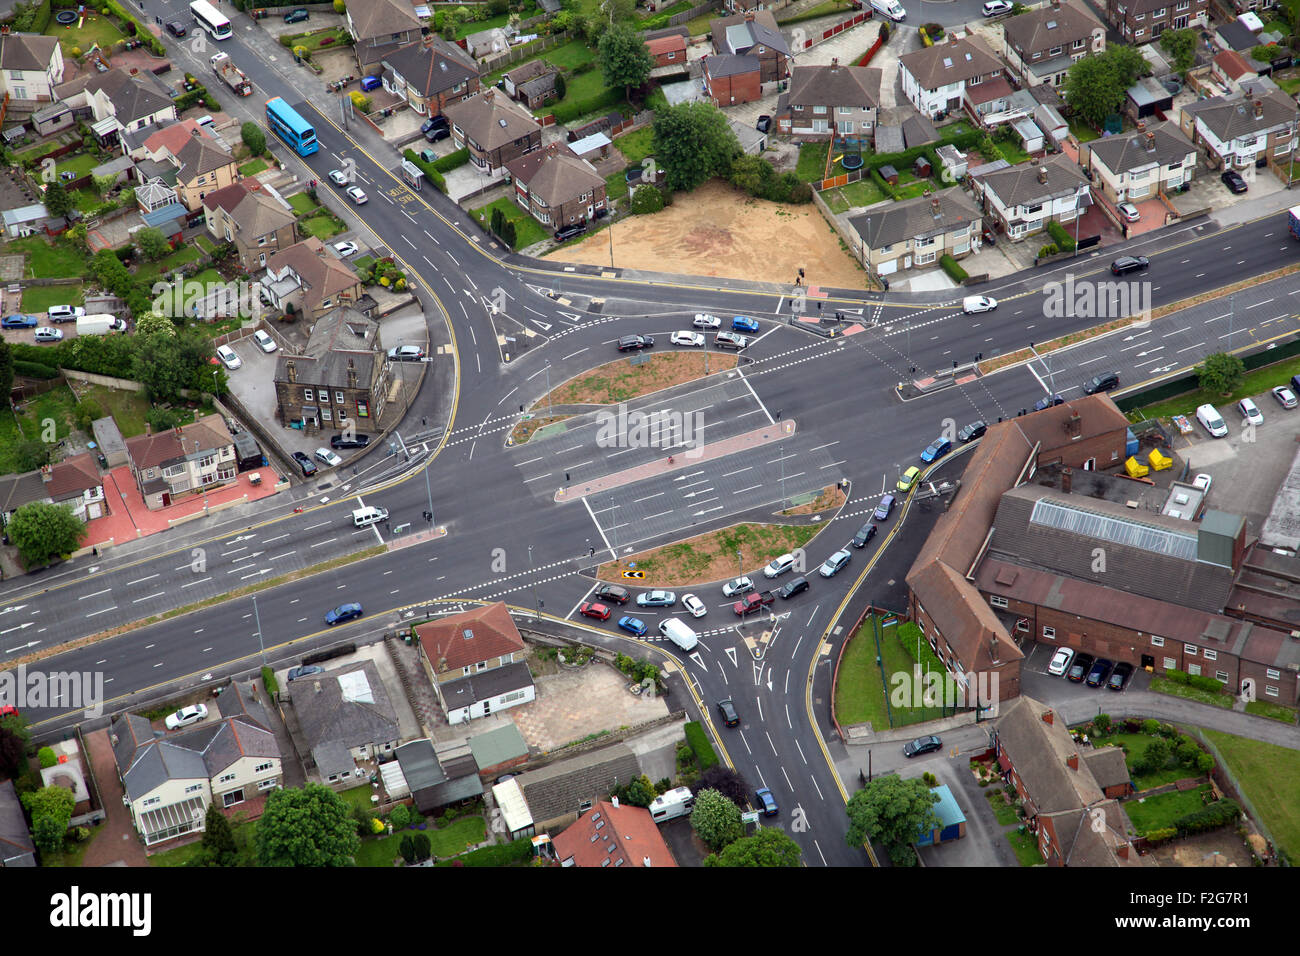 aerial view of a roundabout junction on the A647 Bradford Road between Bradford and Leeds, Yorkshire, UKfrom - Stock Image